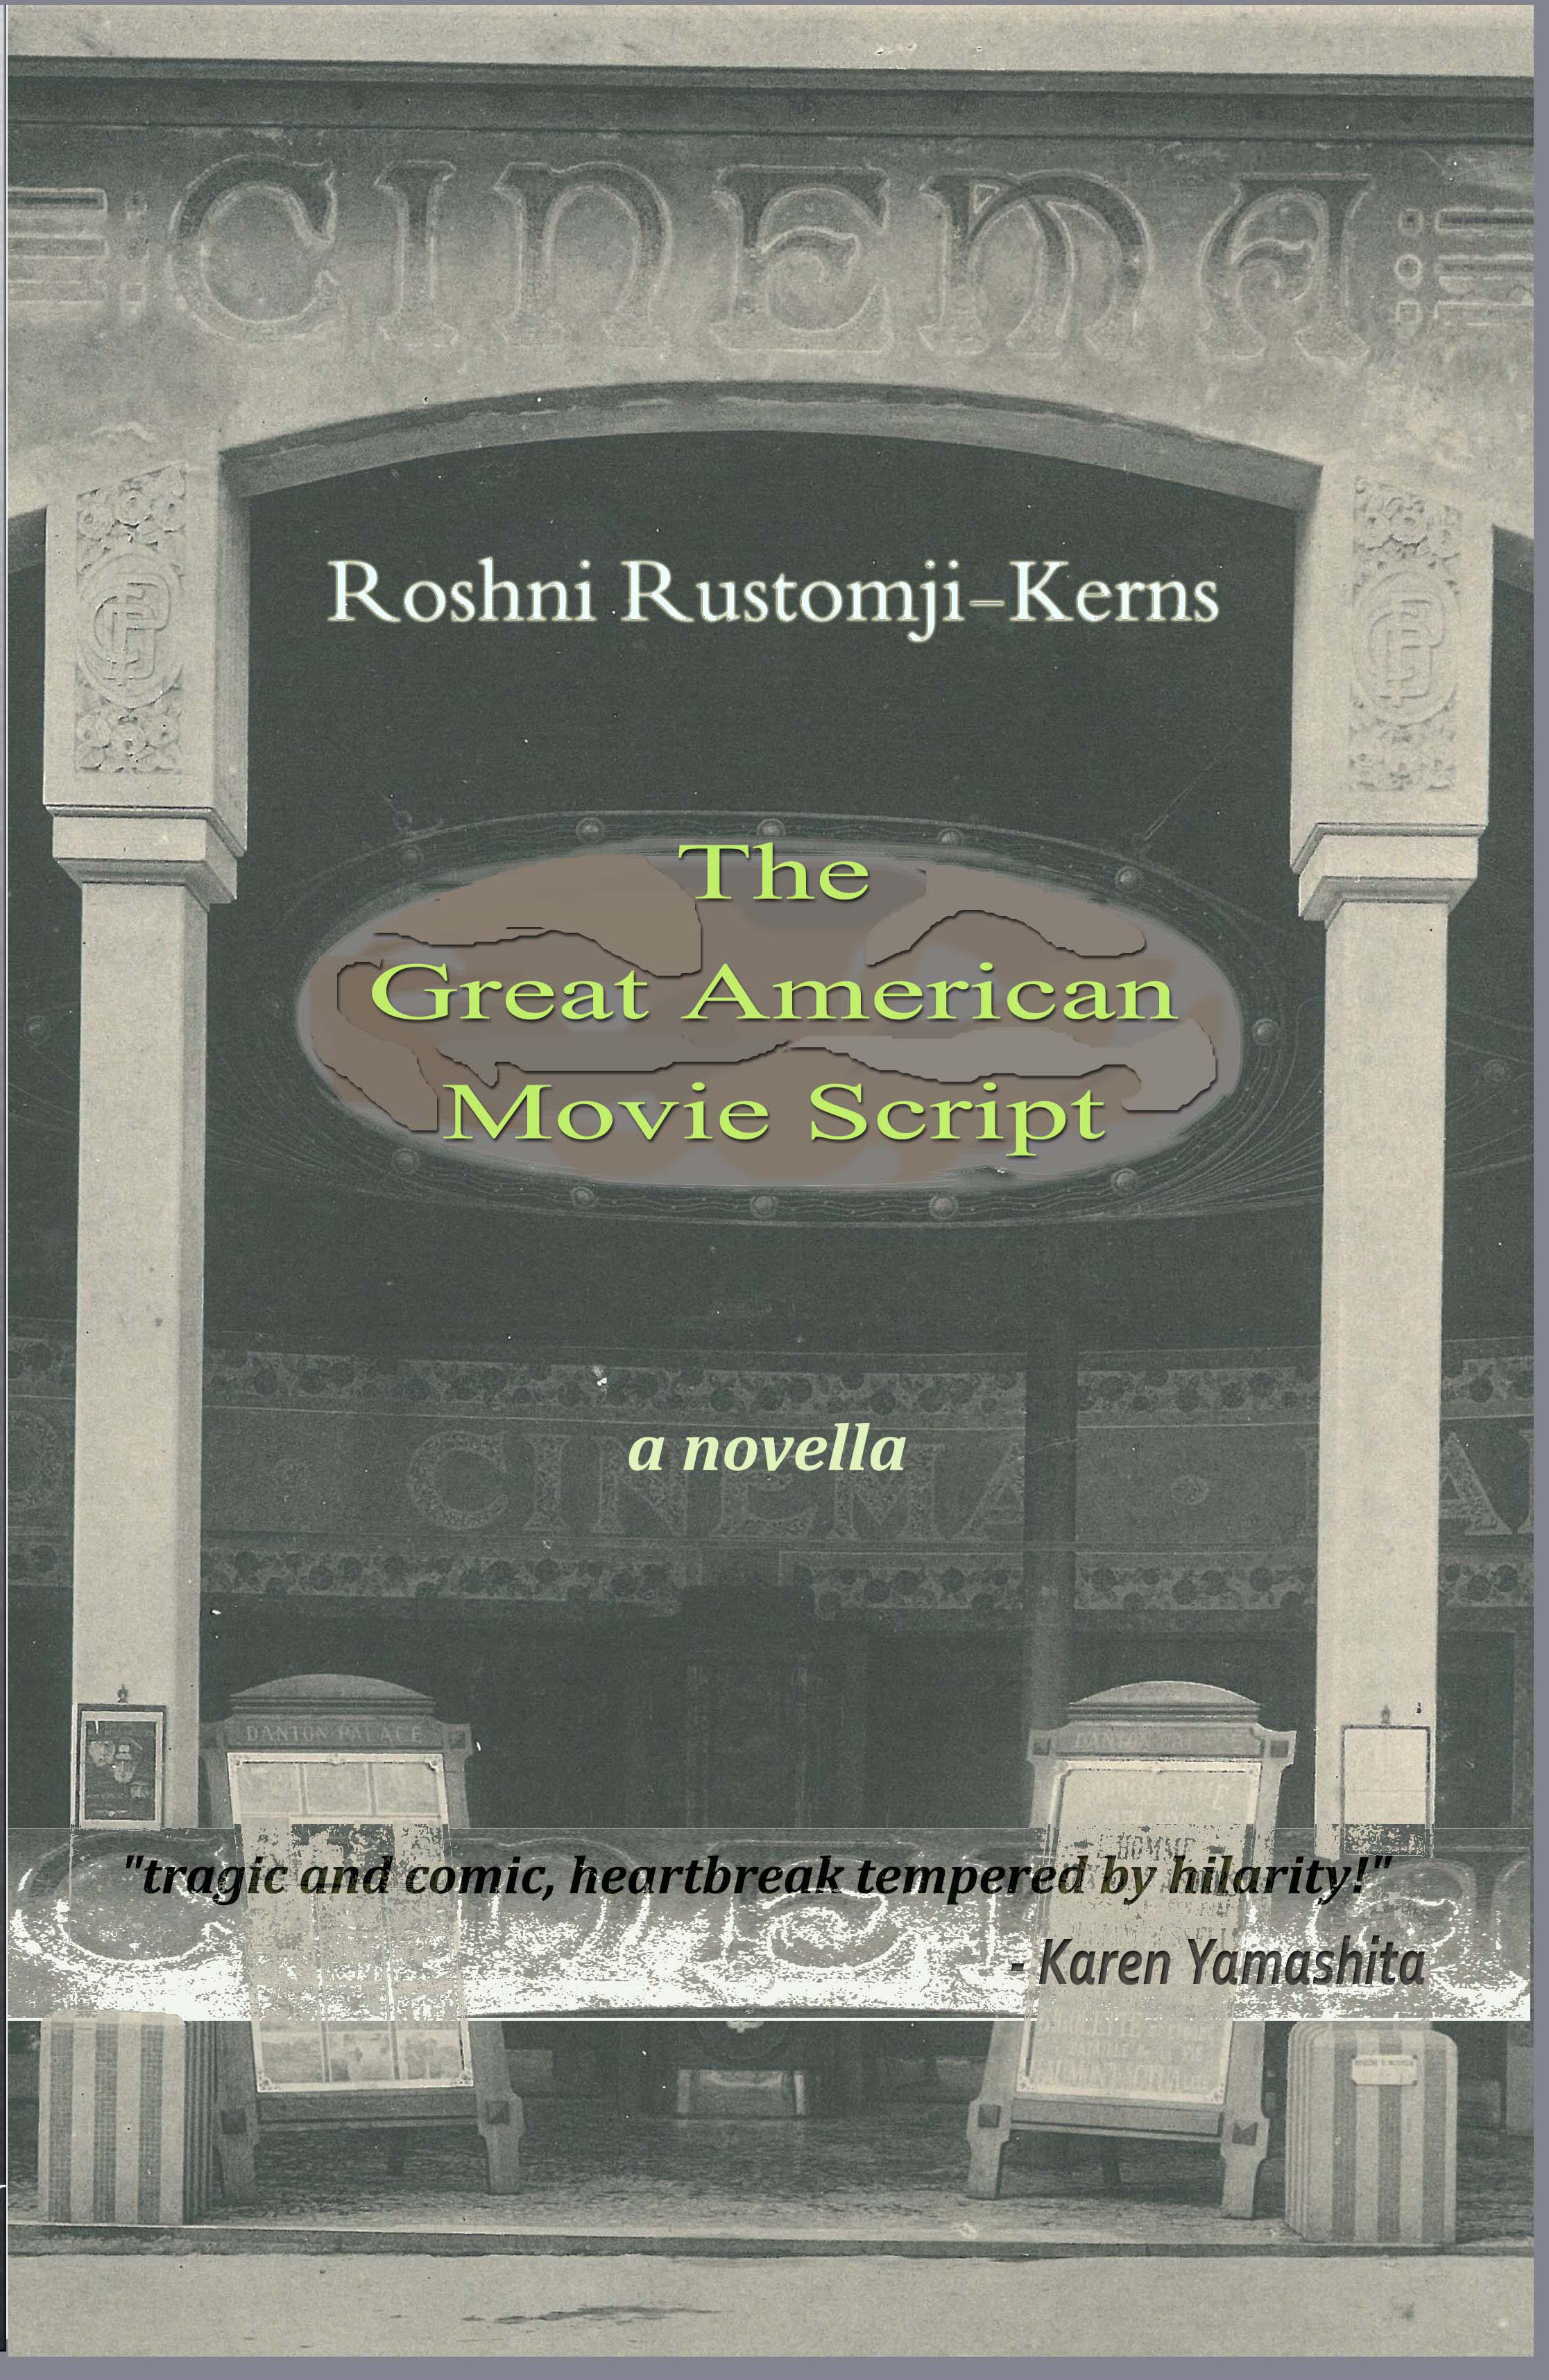 The Great American Movie Script